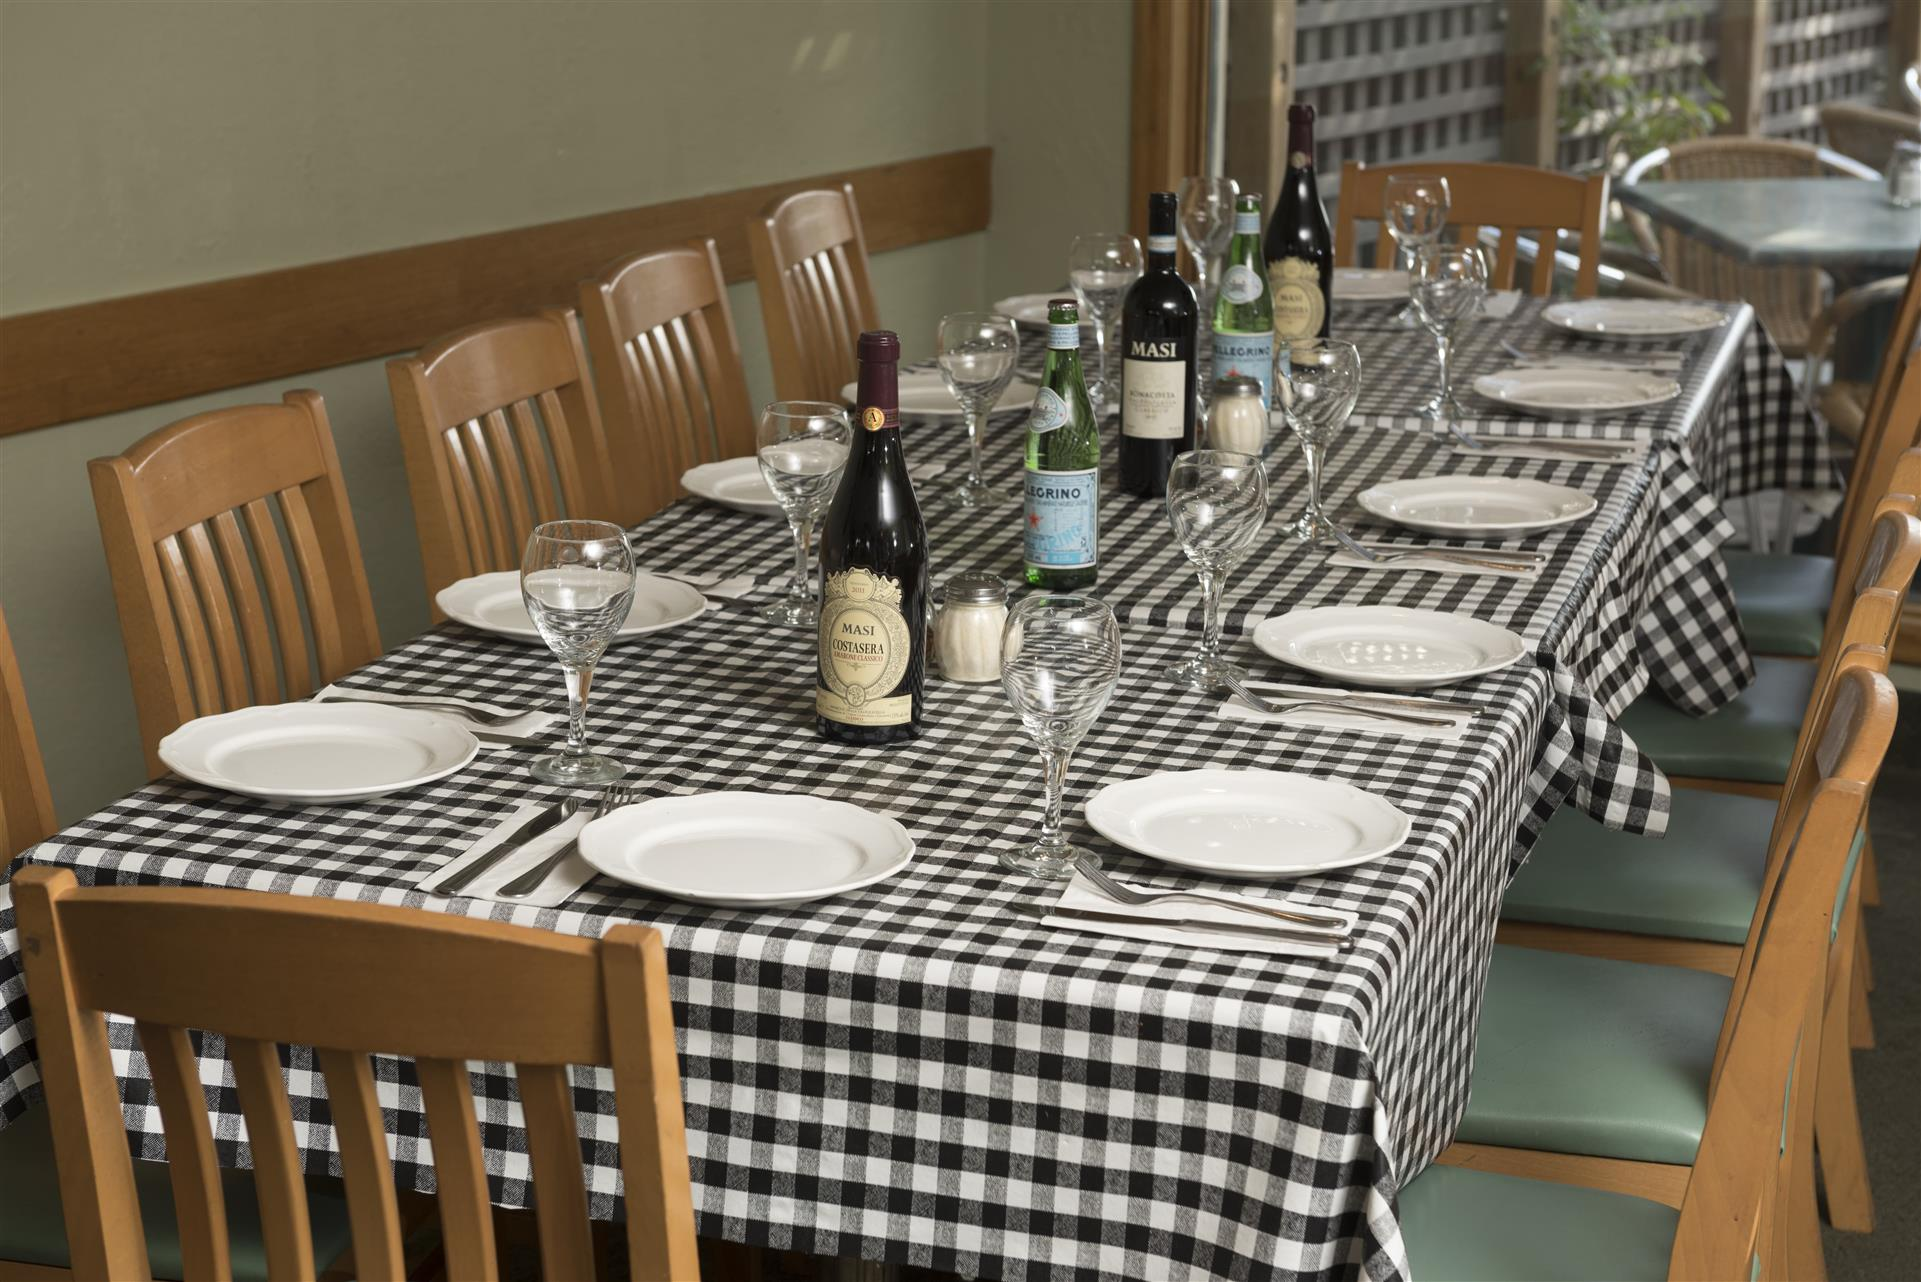 Table setting with plates, glasses, bottles with chairs